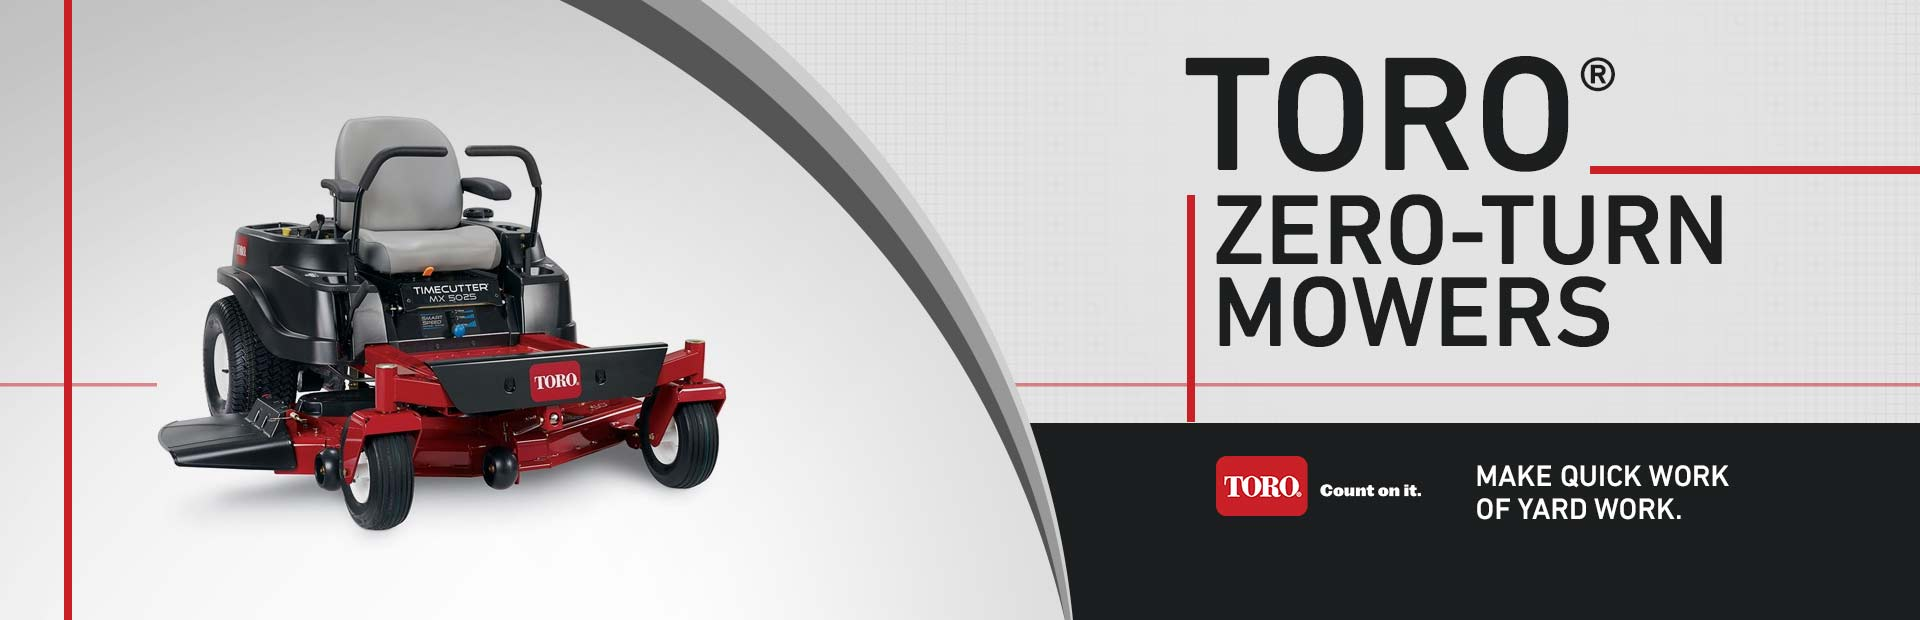 Toro® Zero-Turn Mowers: Click here to view the models.